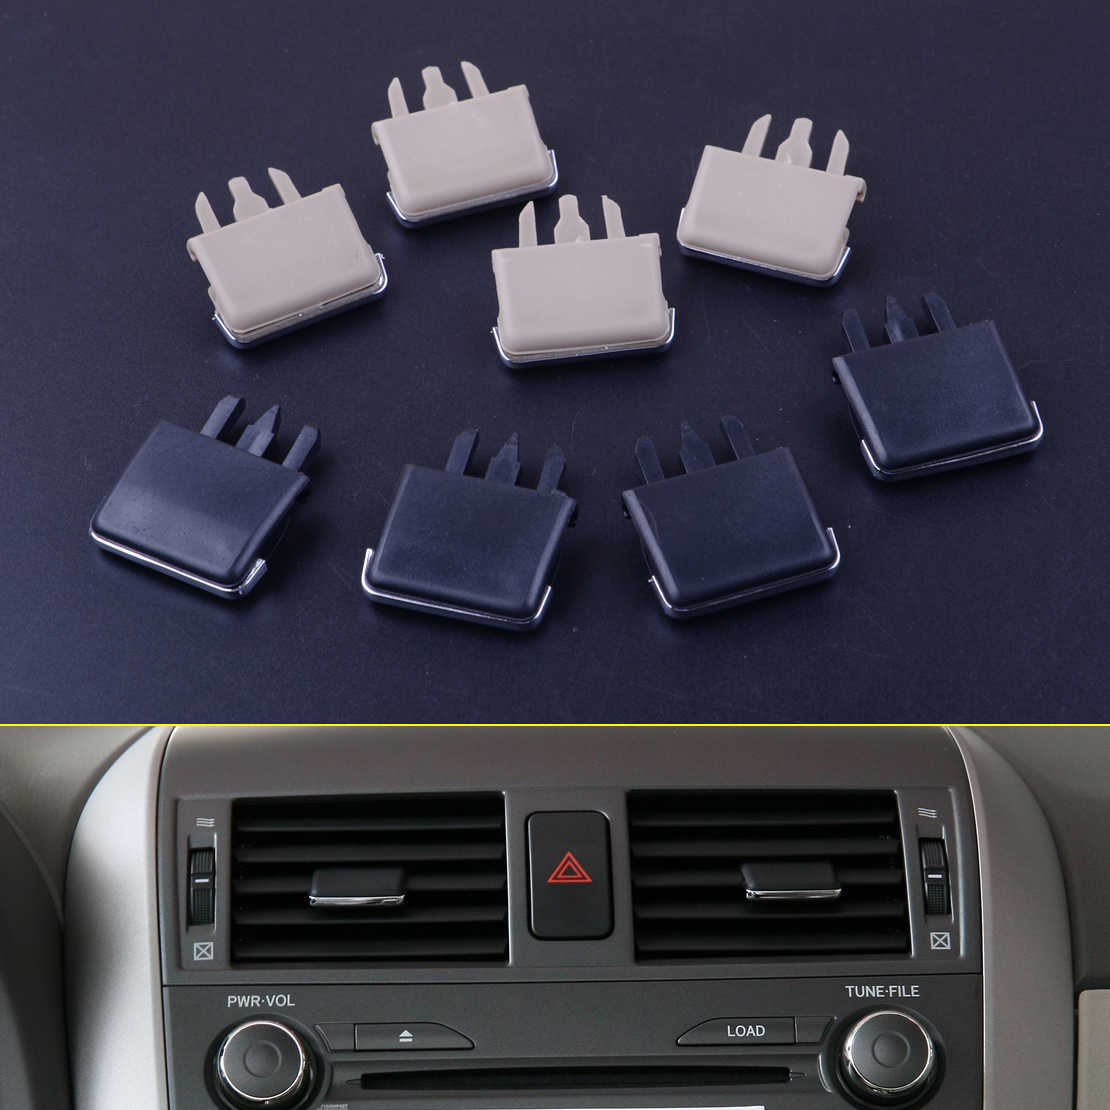 4Pcs/lot Car Center Dash A/C Air Conditioning Vent Louvre Blade Slice Leaf Clip For Toyota Corolla 2004 - 2007 2008 2009 2010